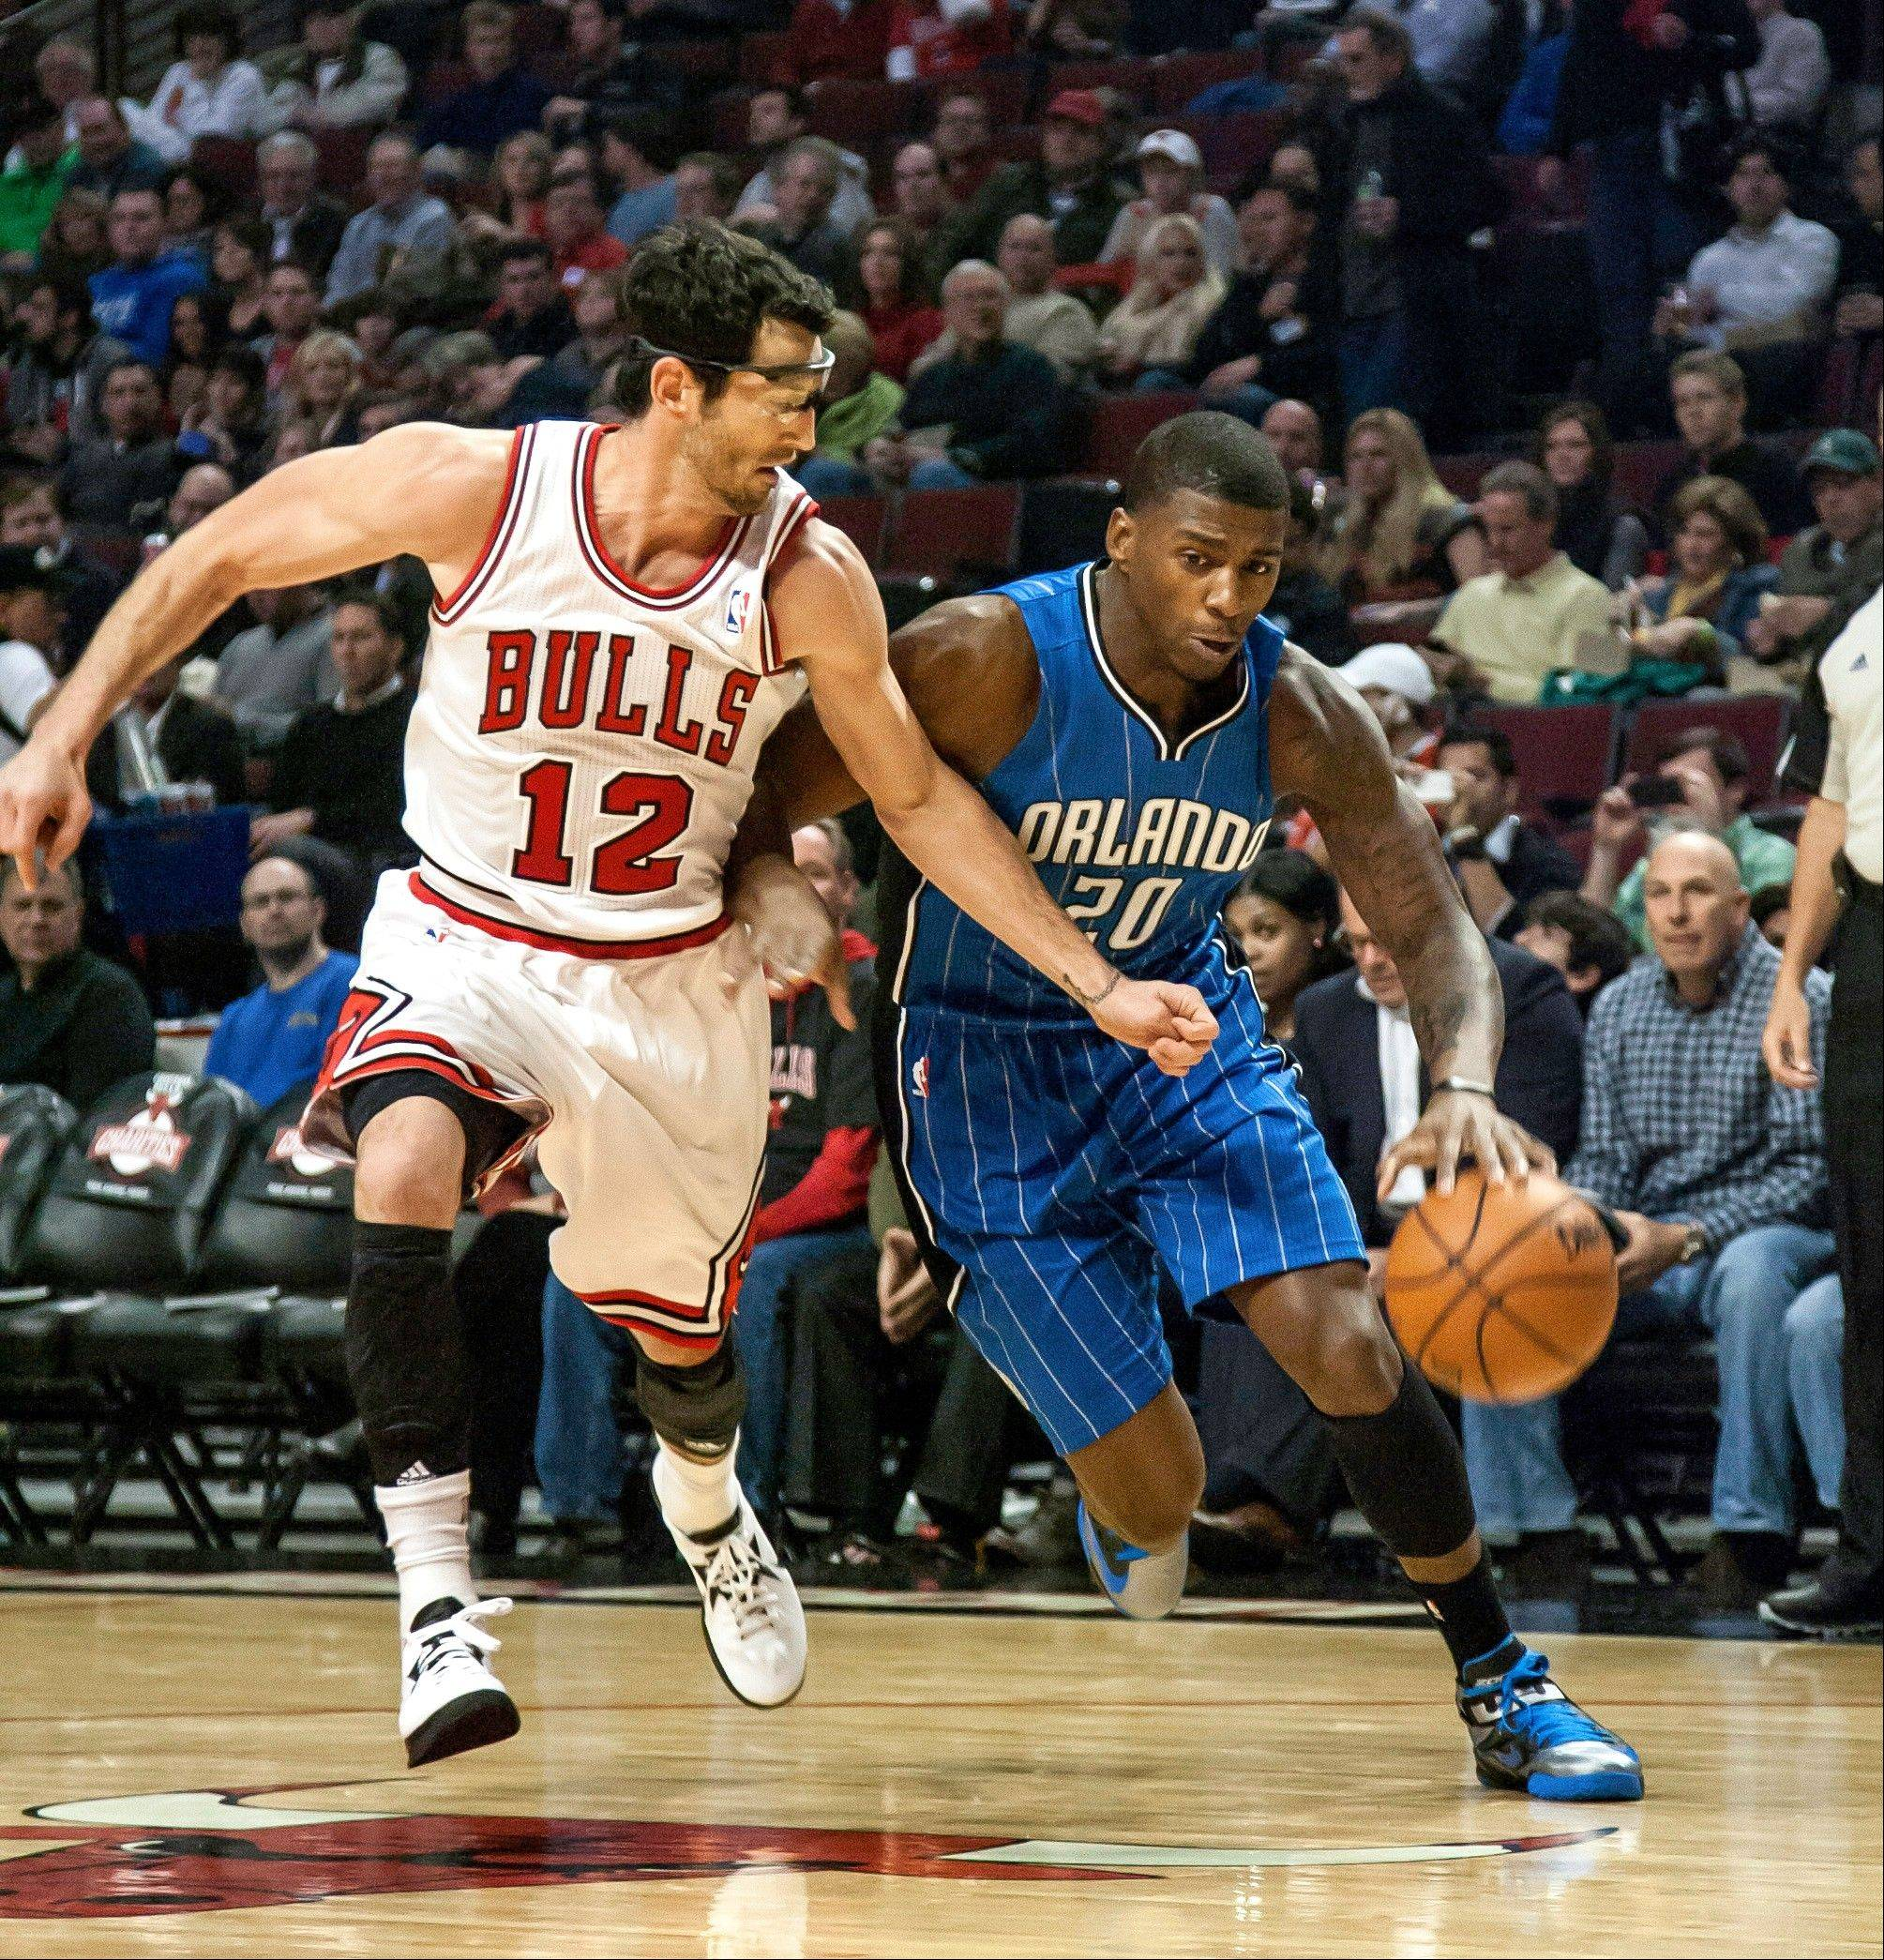 Bulls guard Kirk Hinrich tries to keep up with the Orlando Magic's DeQuan Jones Tuesday during the first quarter at the United Center.